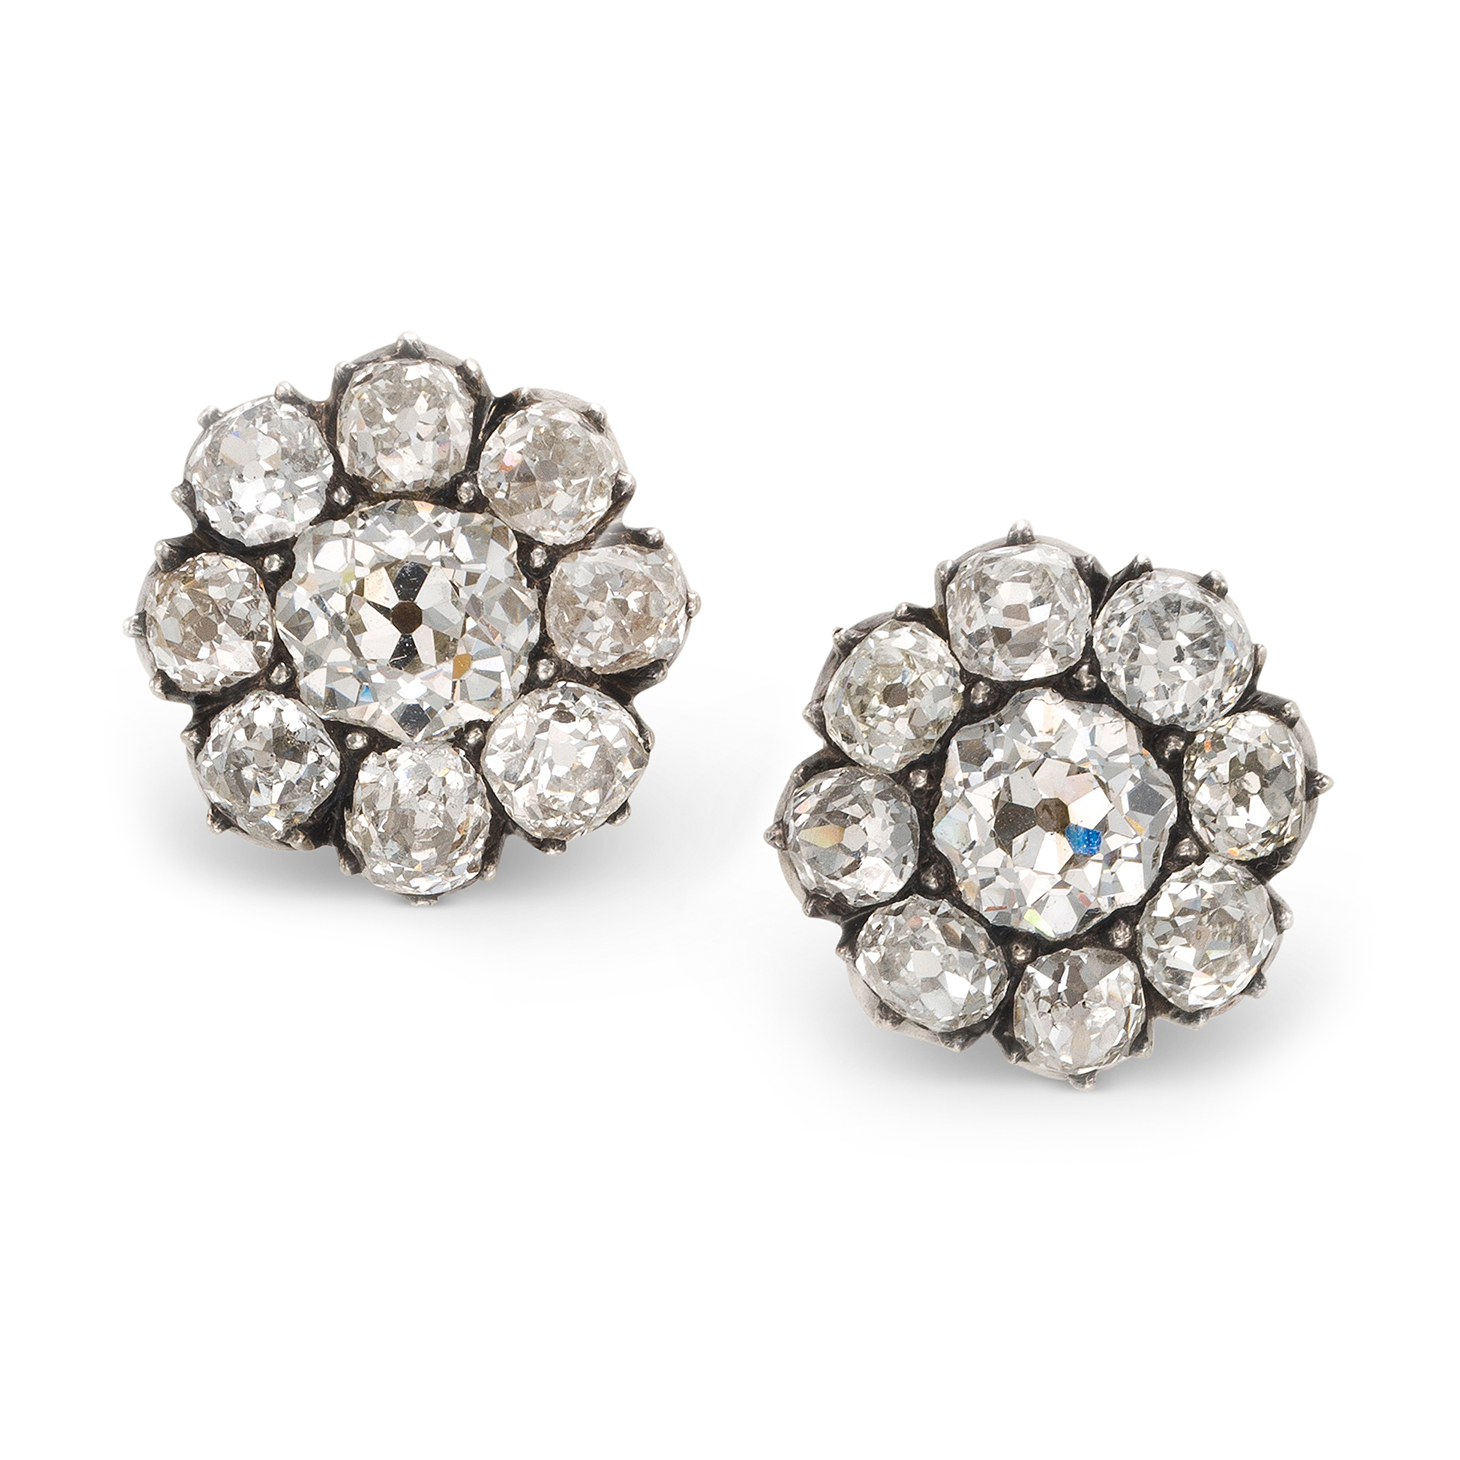 An Antique Pair of Old European-cut Diamond Cluster Earrings, circa 1890